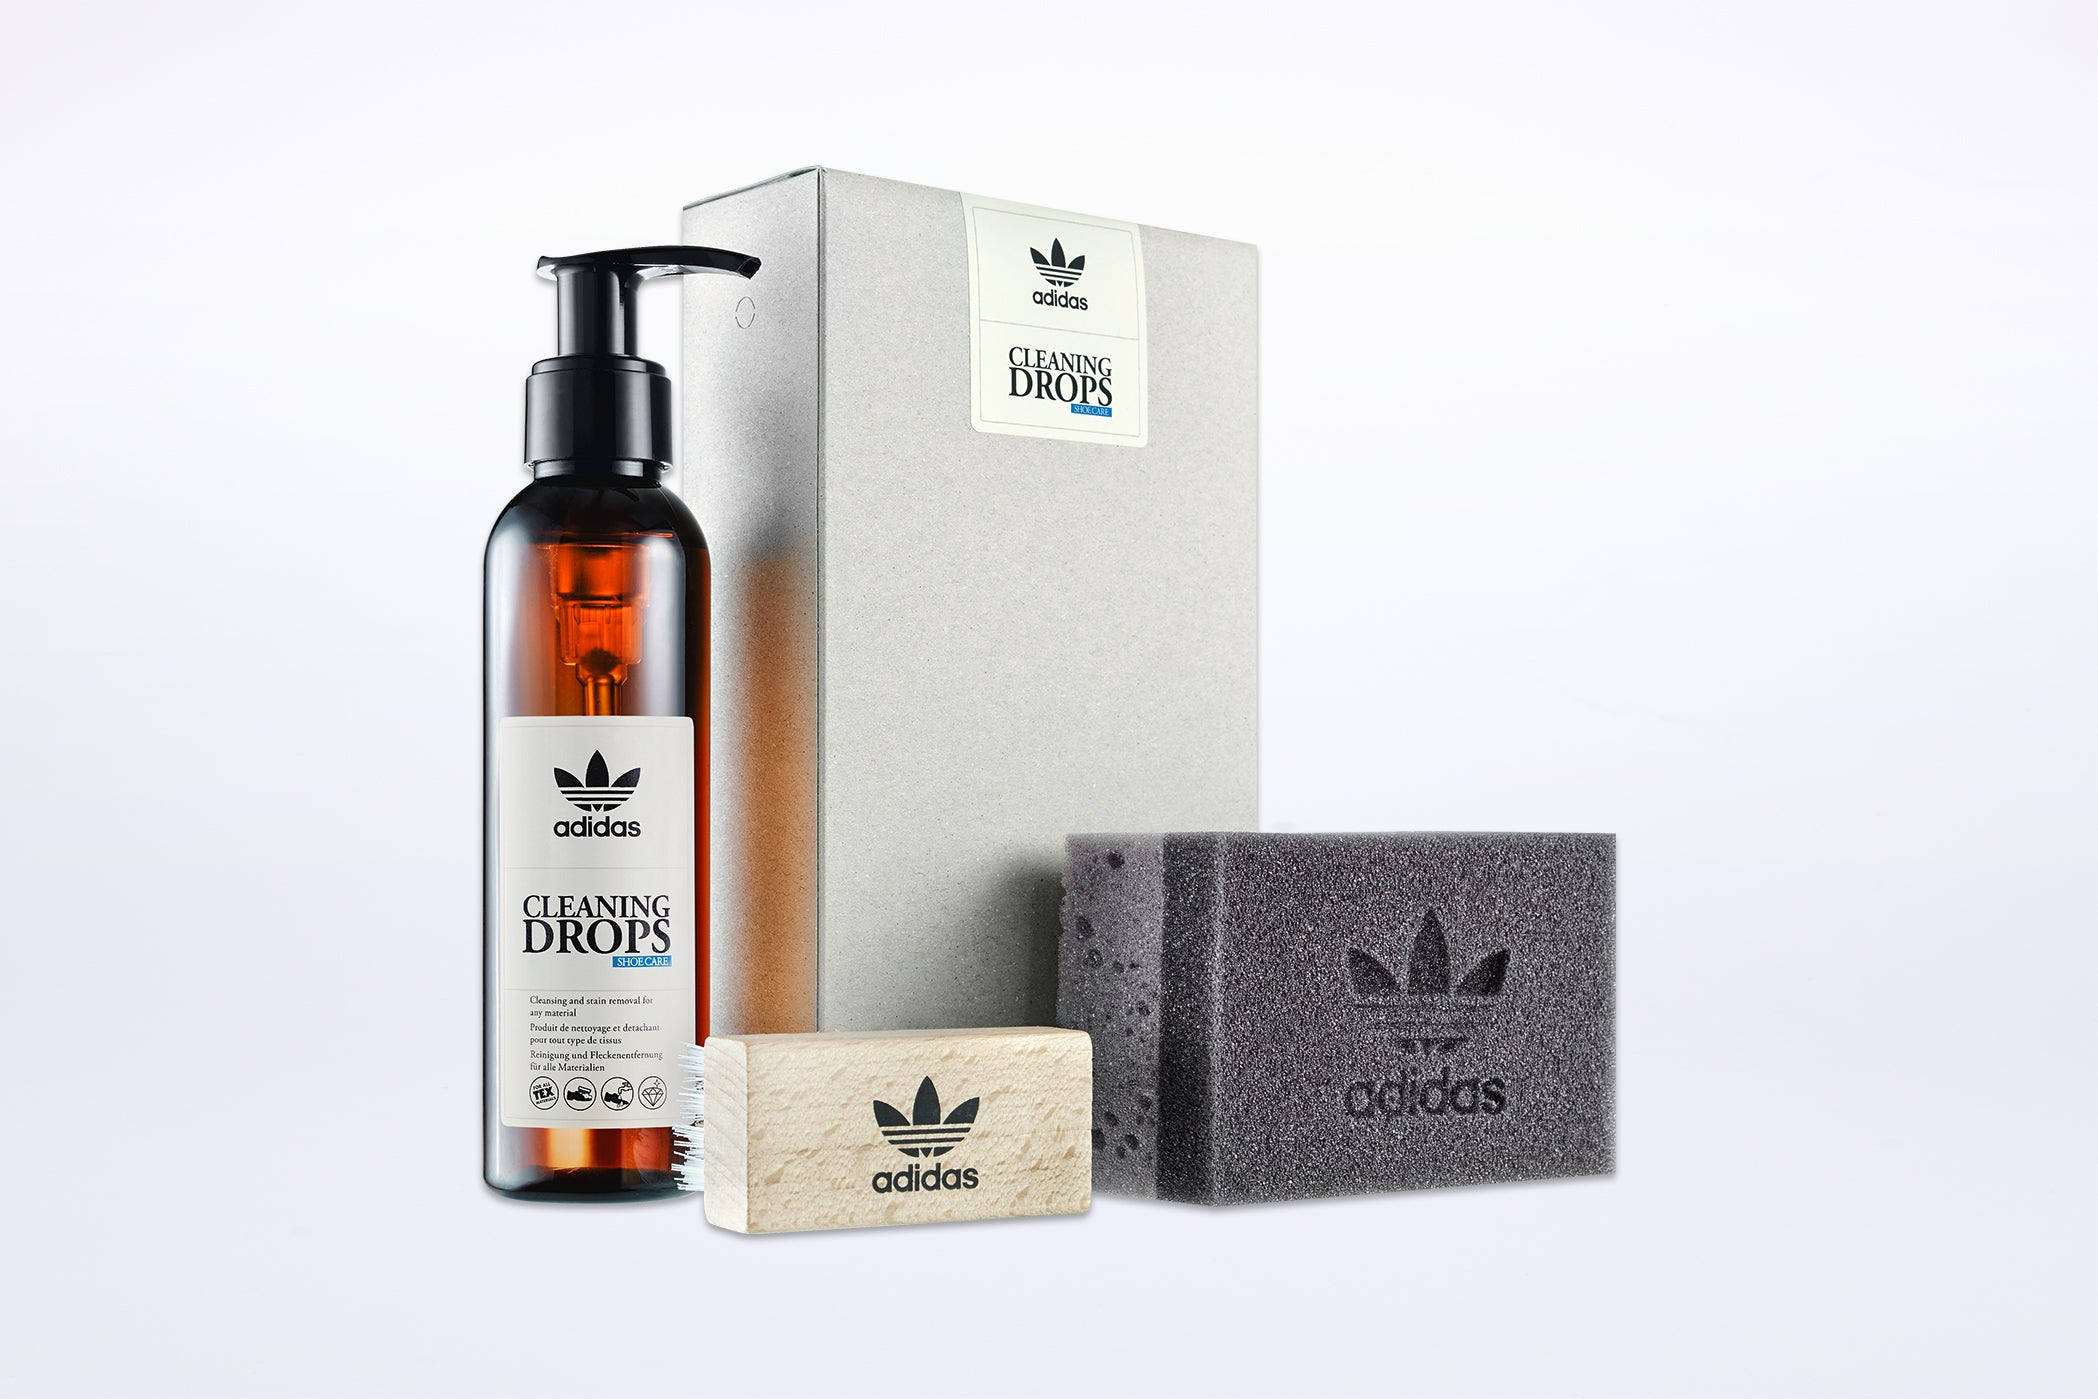 adidas adidas Cleaning Drops Set - Edelvice Sneaker Muenchen